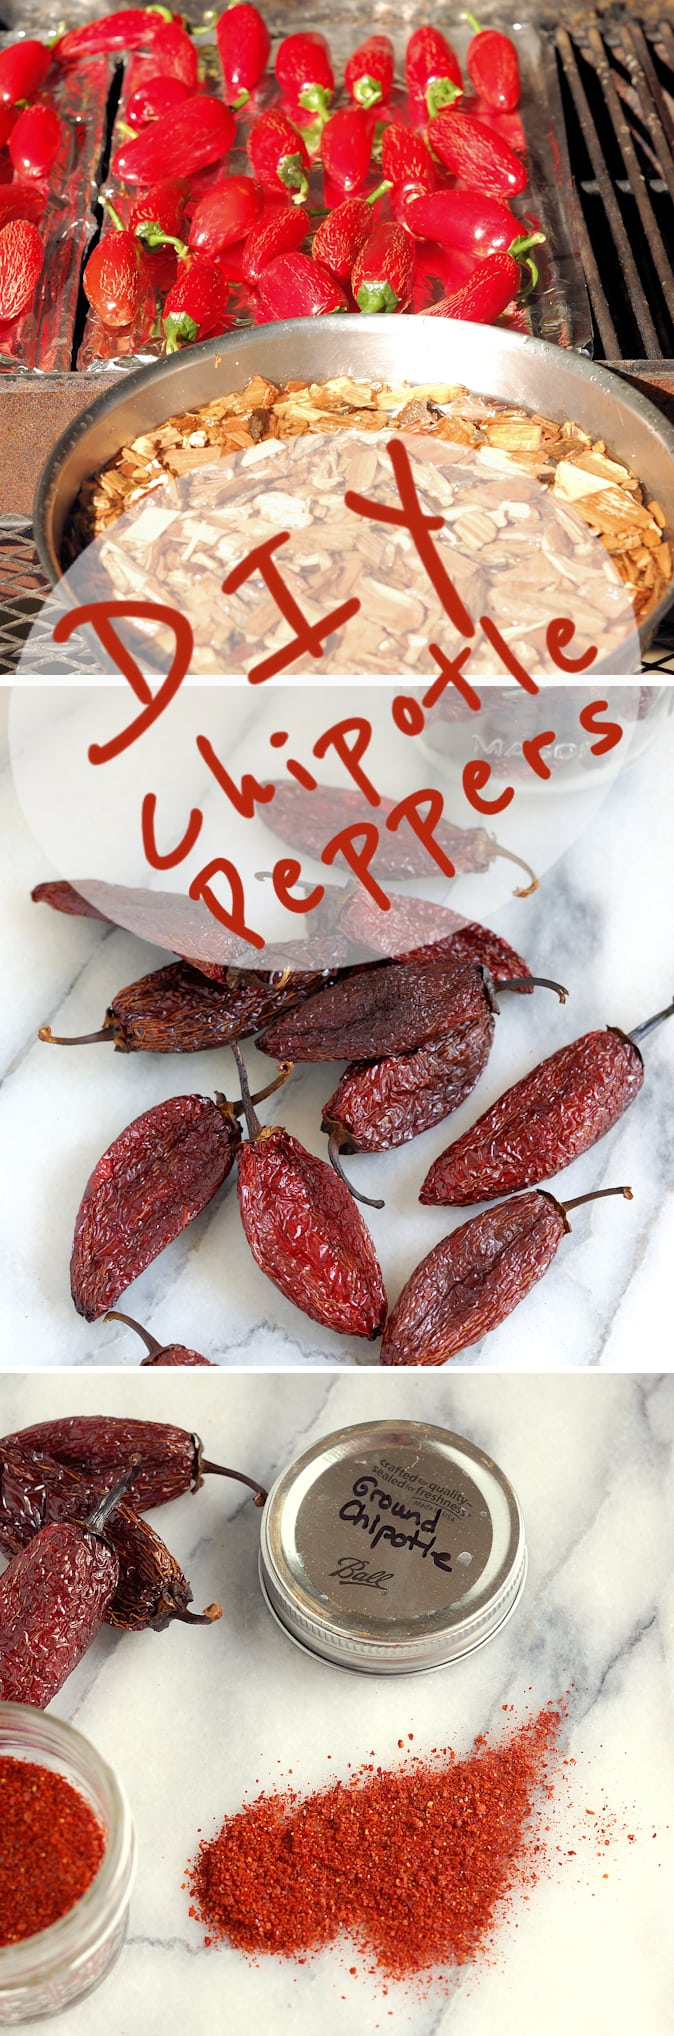 Make your own Chipotle Peppers. There is just one ingredient in this recipe, fresh jalapeno peppers.